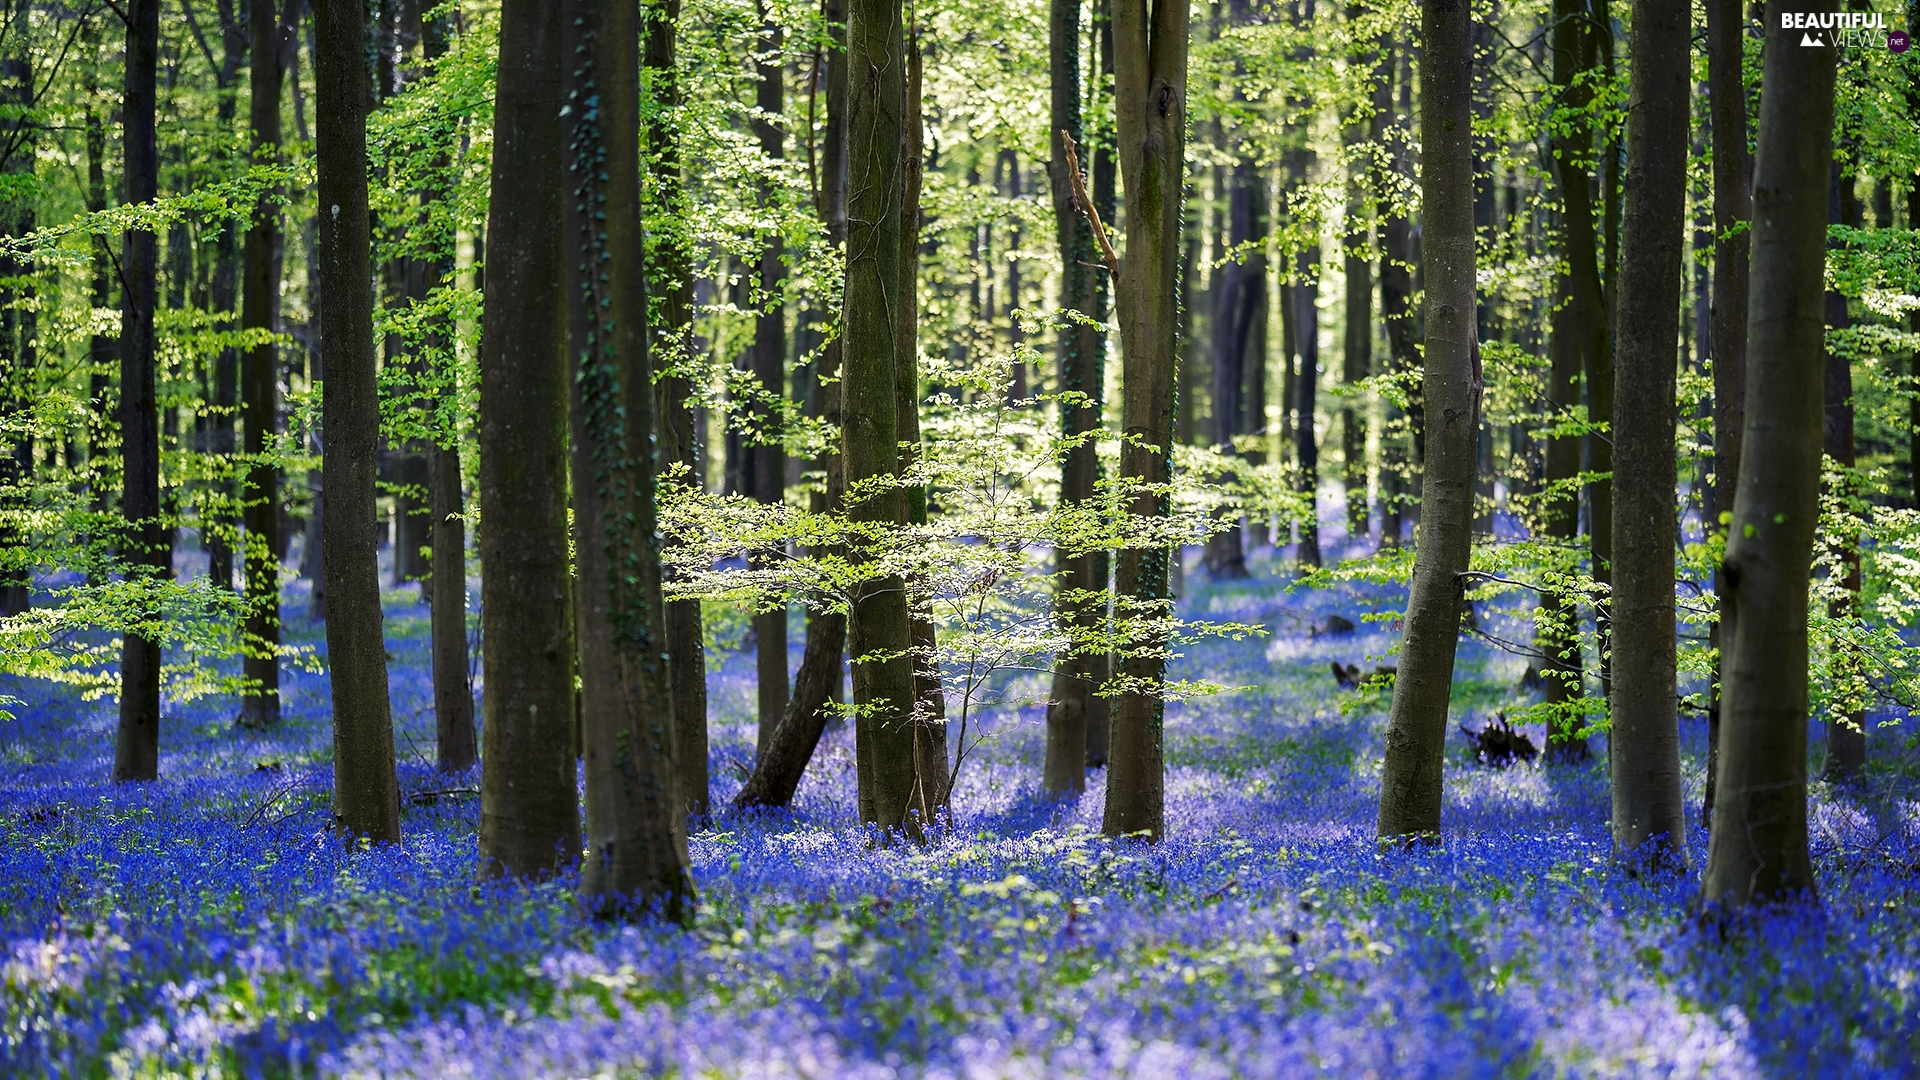 viewes, forest, Blue, Flowers, Spring, trees